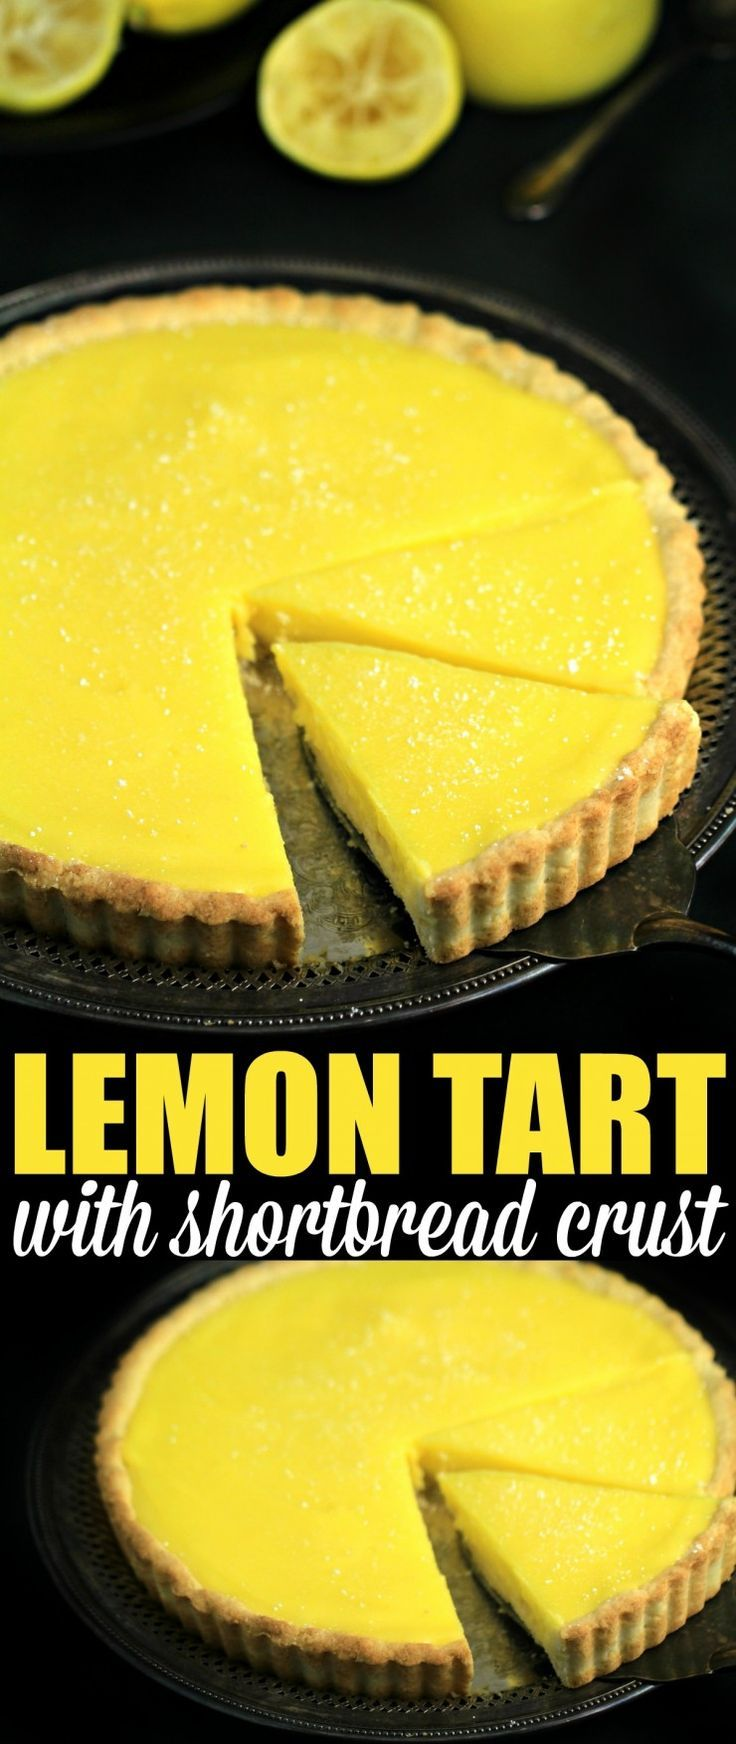 Lemon Tart With Shortbread Crust Recipe Lemon Recipes Desserts Lemon Desserts